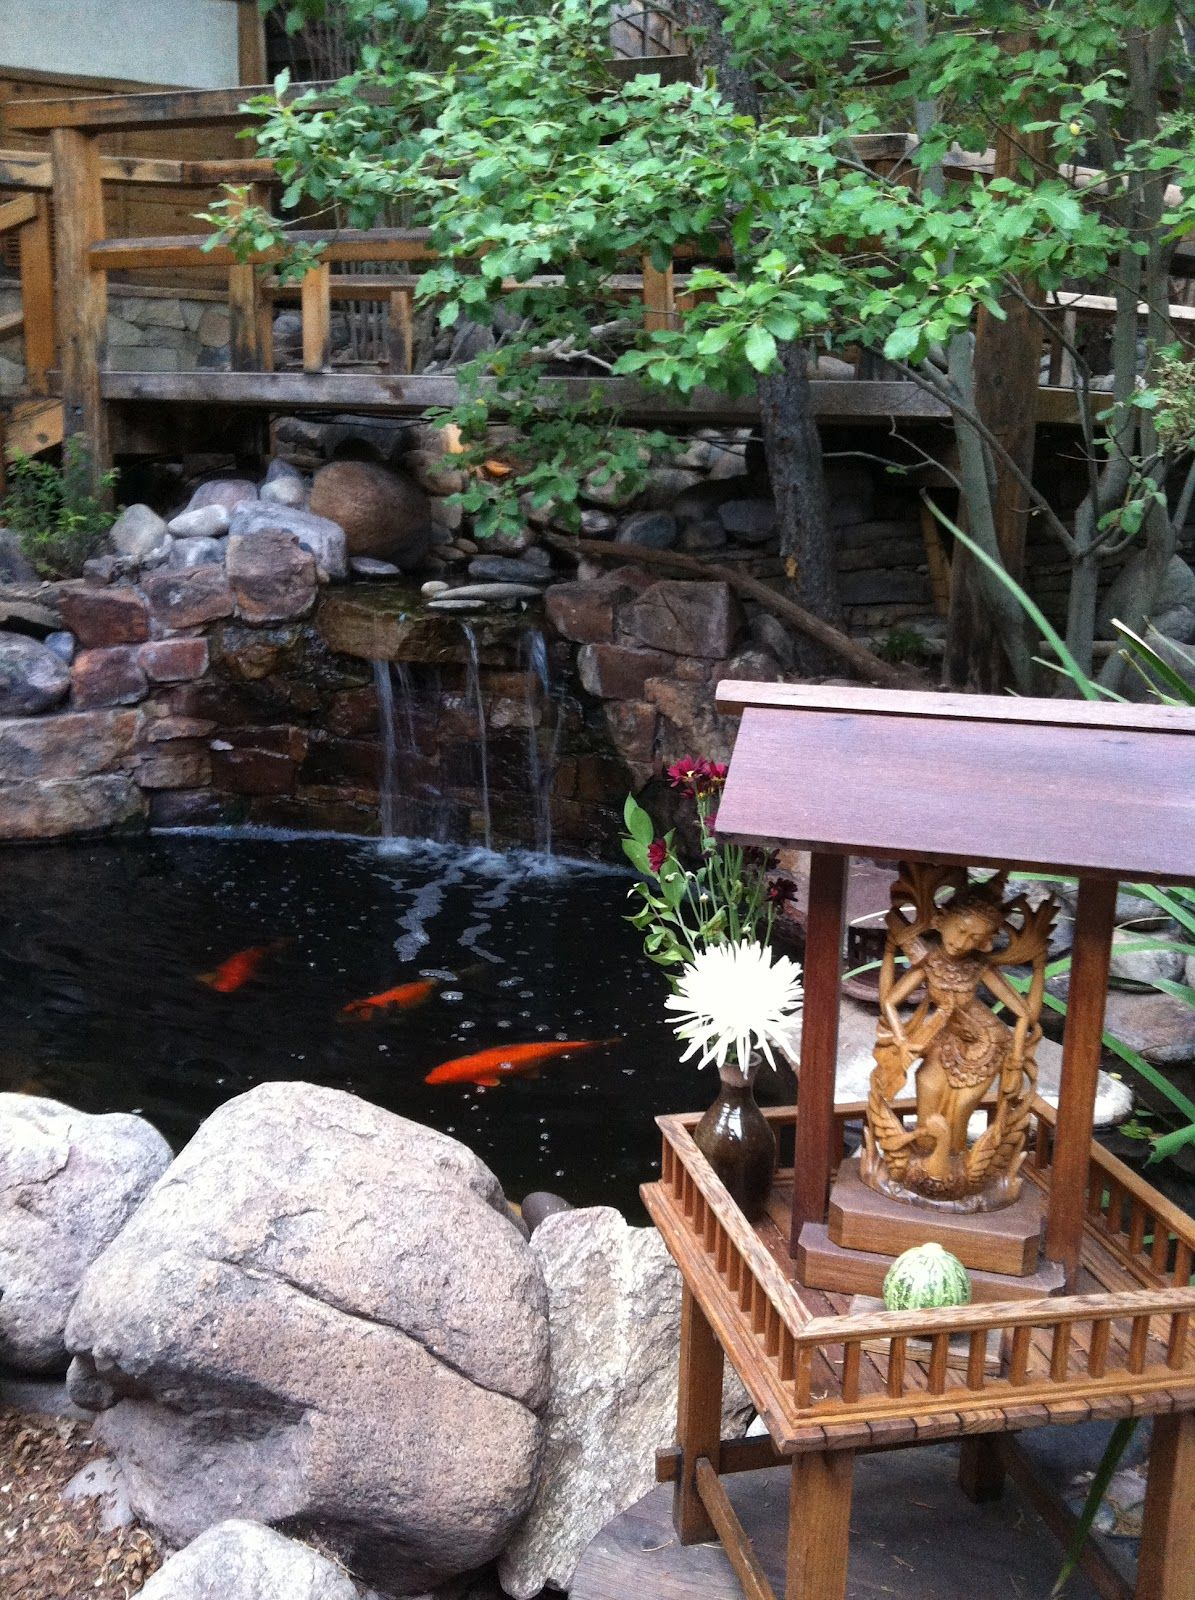 Aquascape Your Landscape: Designing Your Dream Pond |Gentle Waterfall Pond